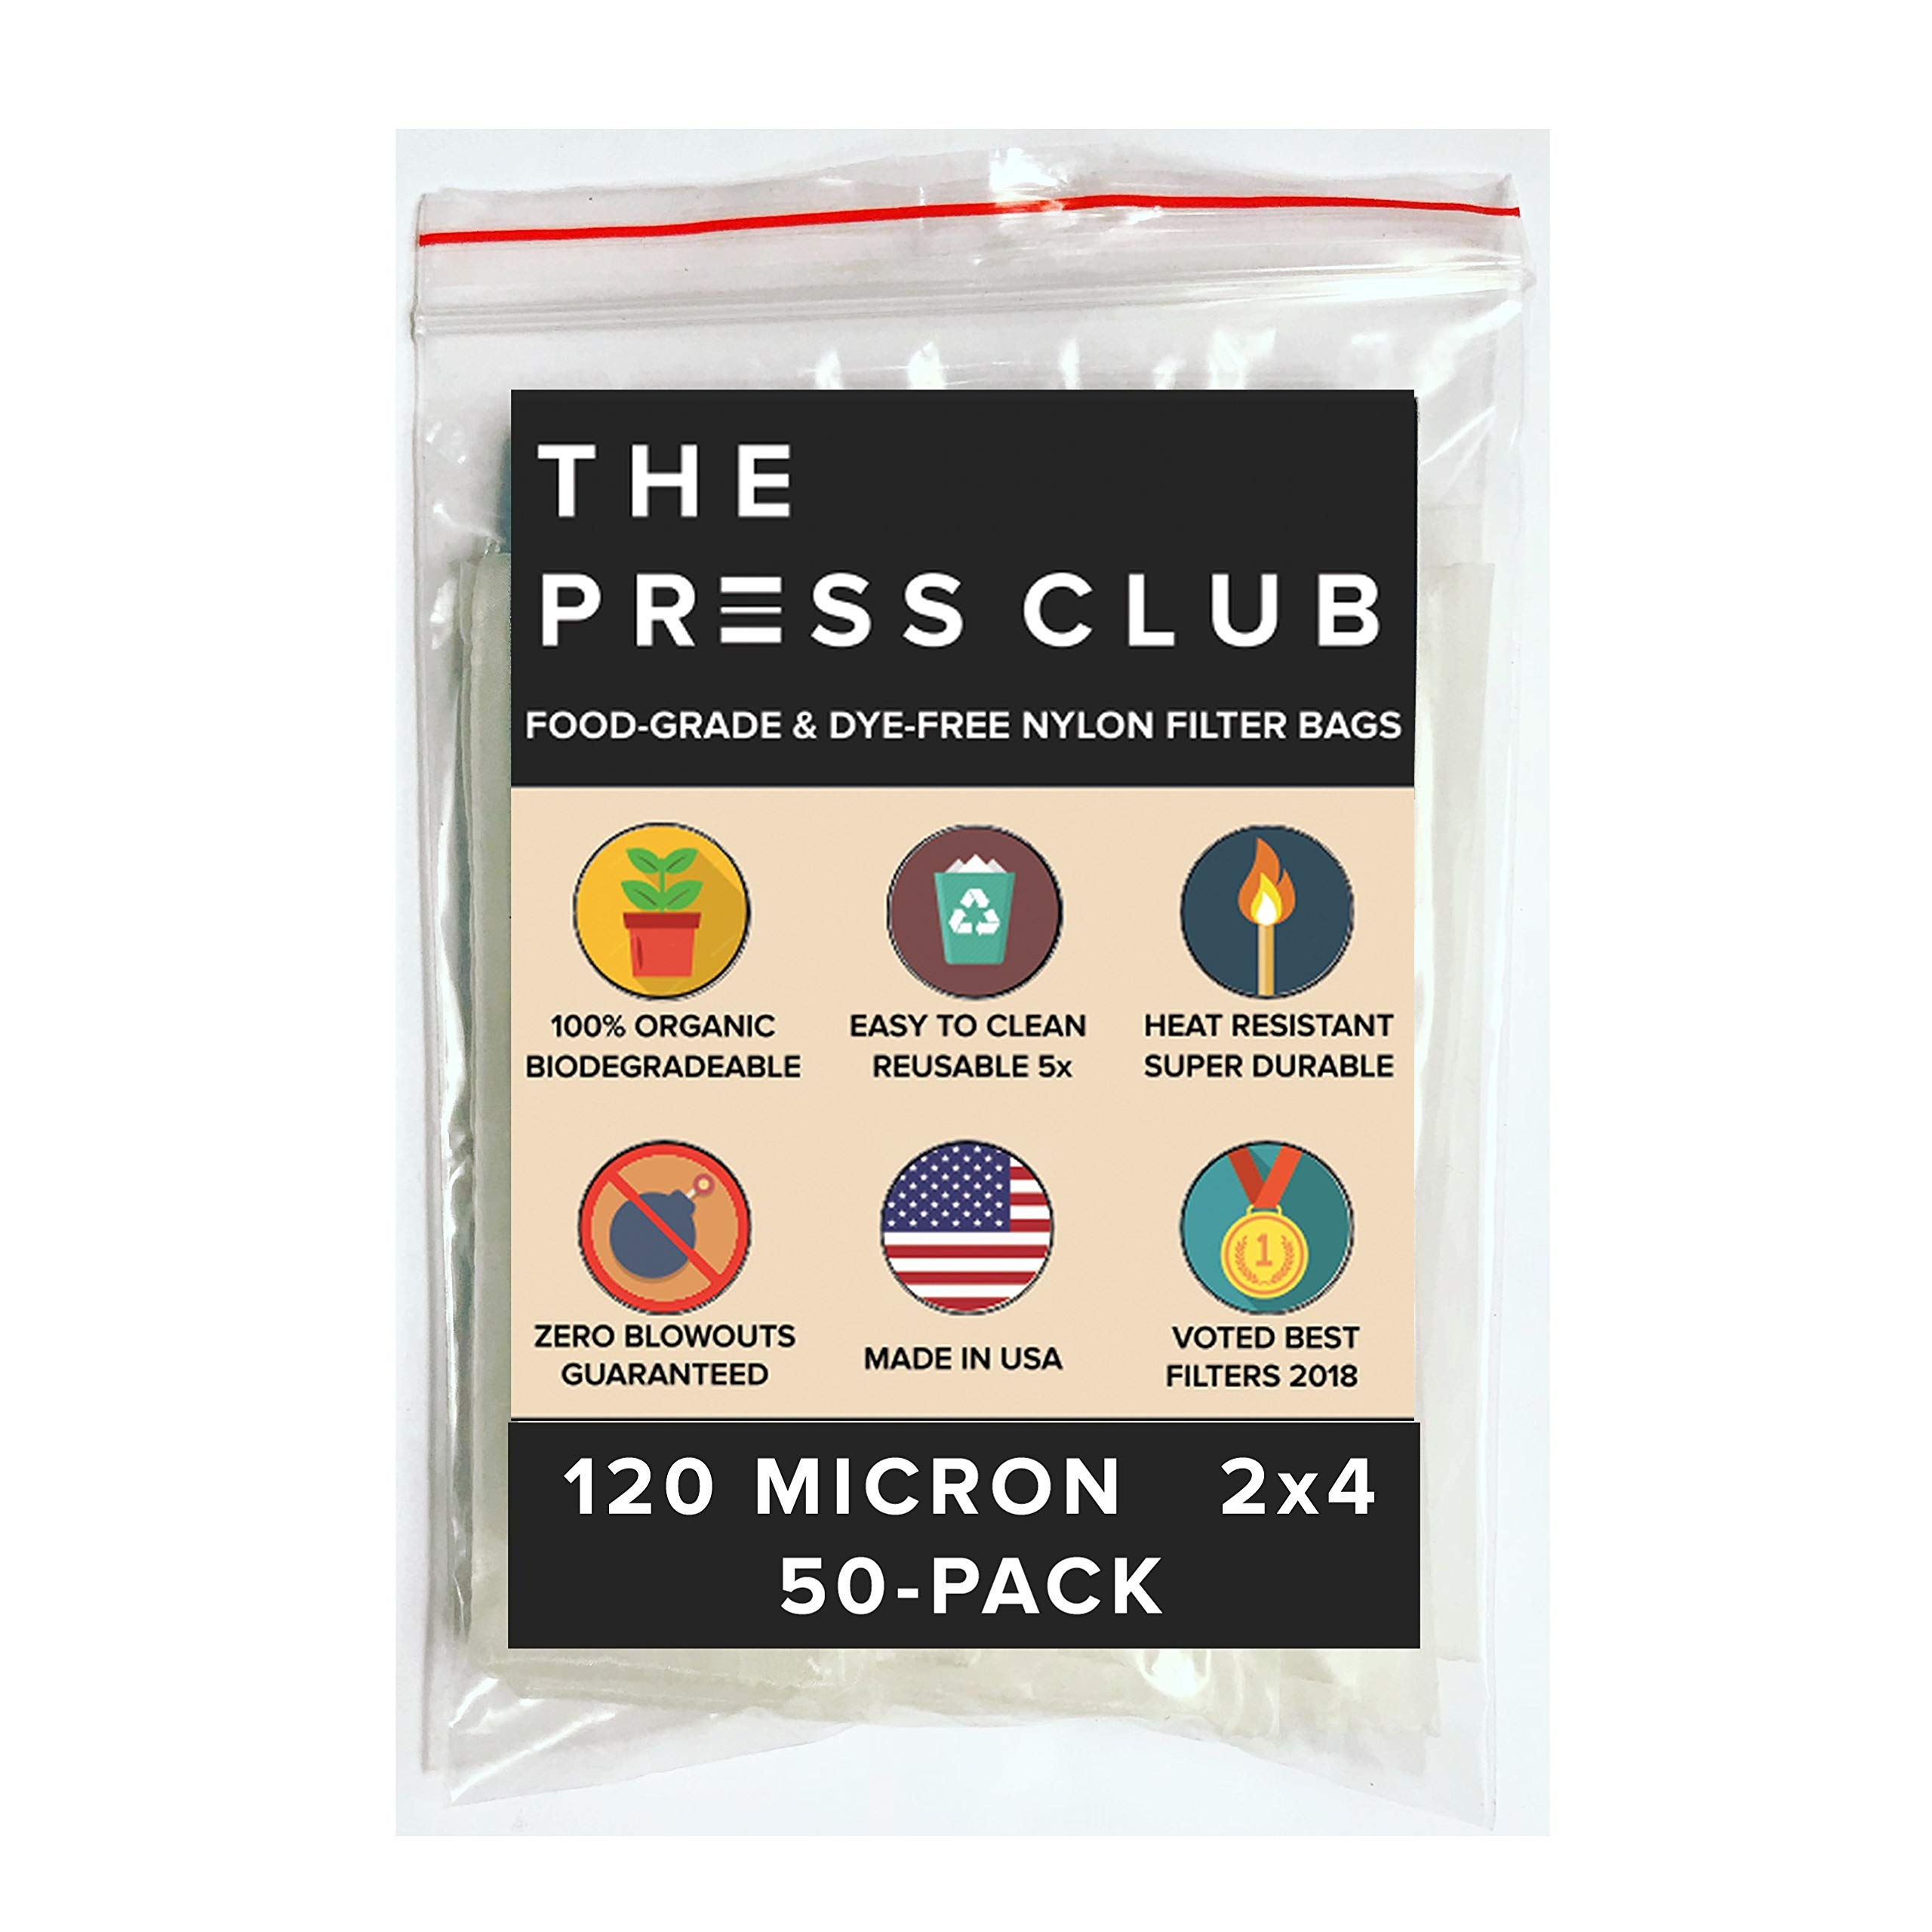 120 Micron   Premium Nylon Tea Filter Press Screen Bags   2'' x 4''   50 Pack   Zero Blowout Guarantee   All Micron & Sizes Available by The Press Club (Image #1)